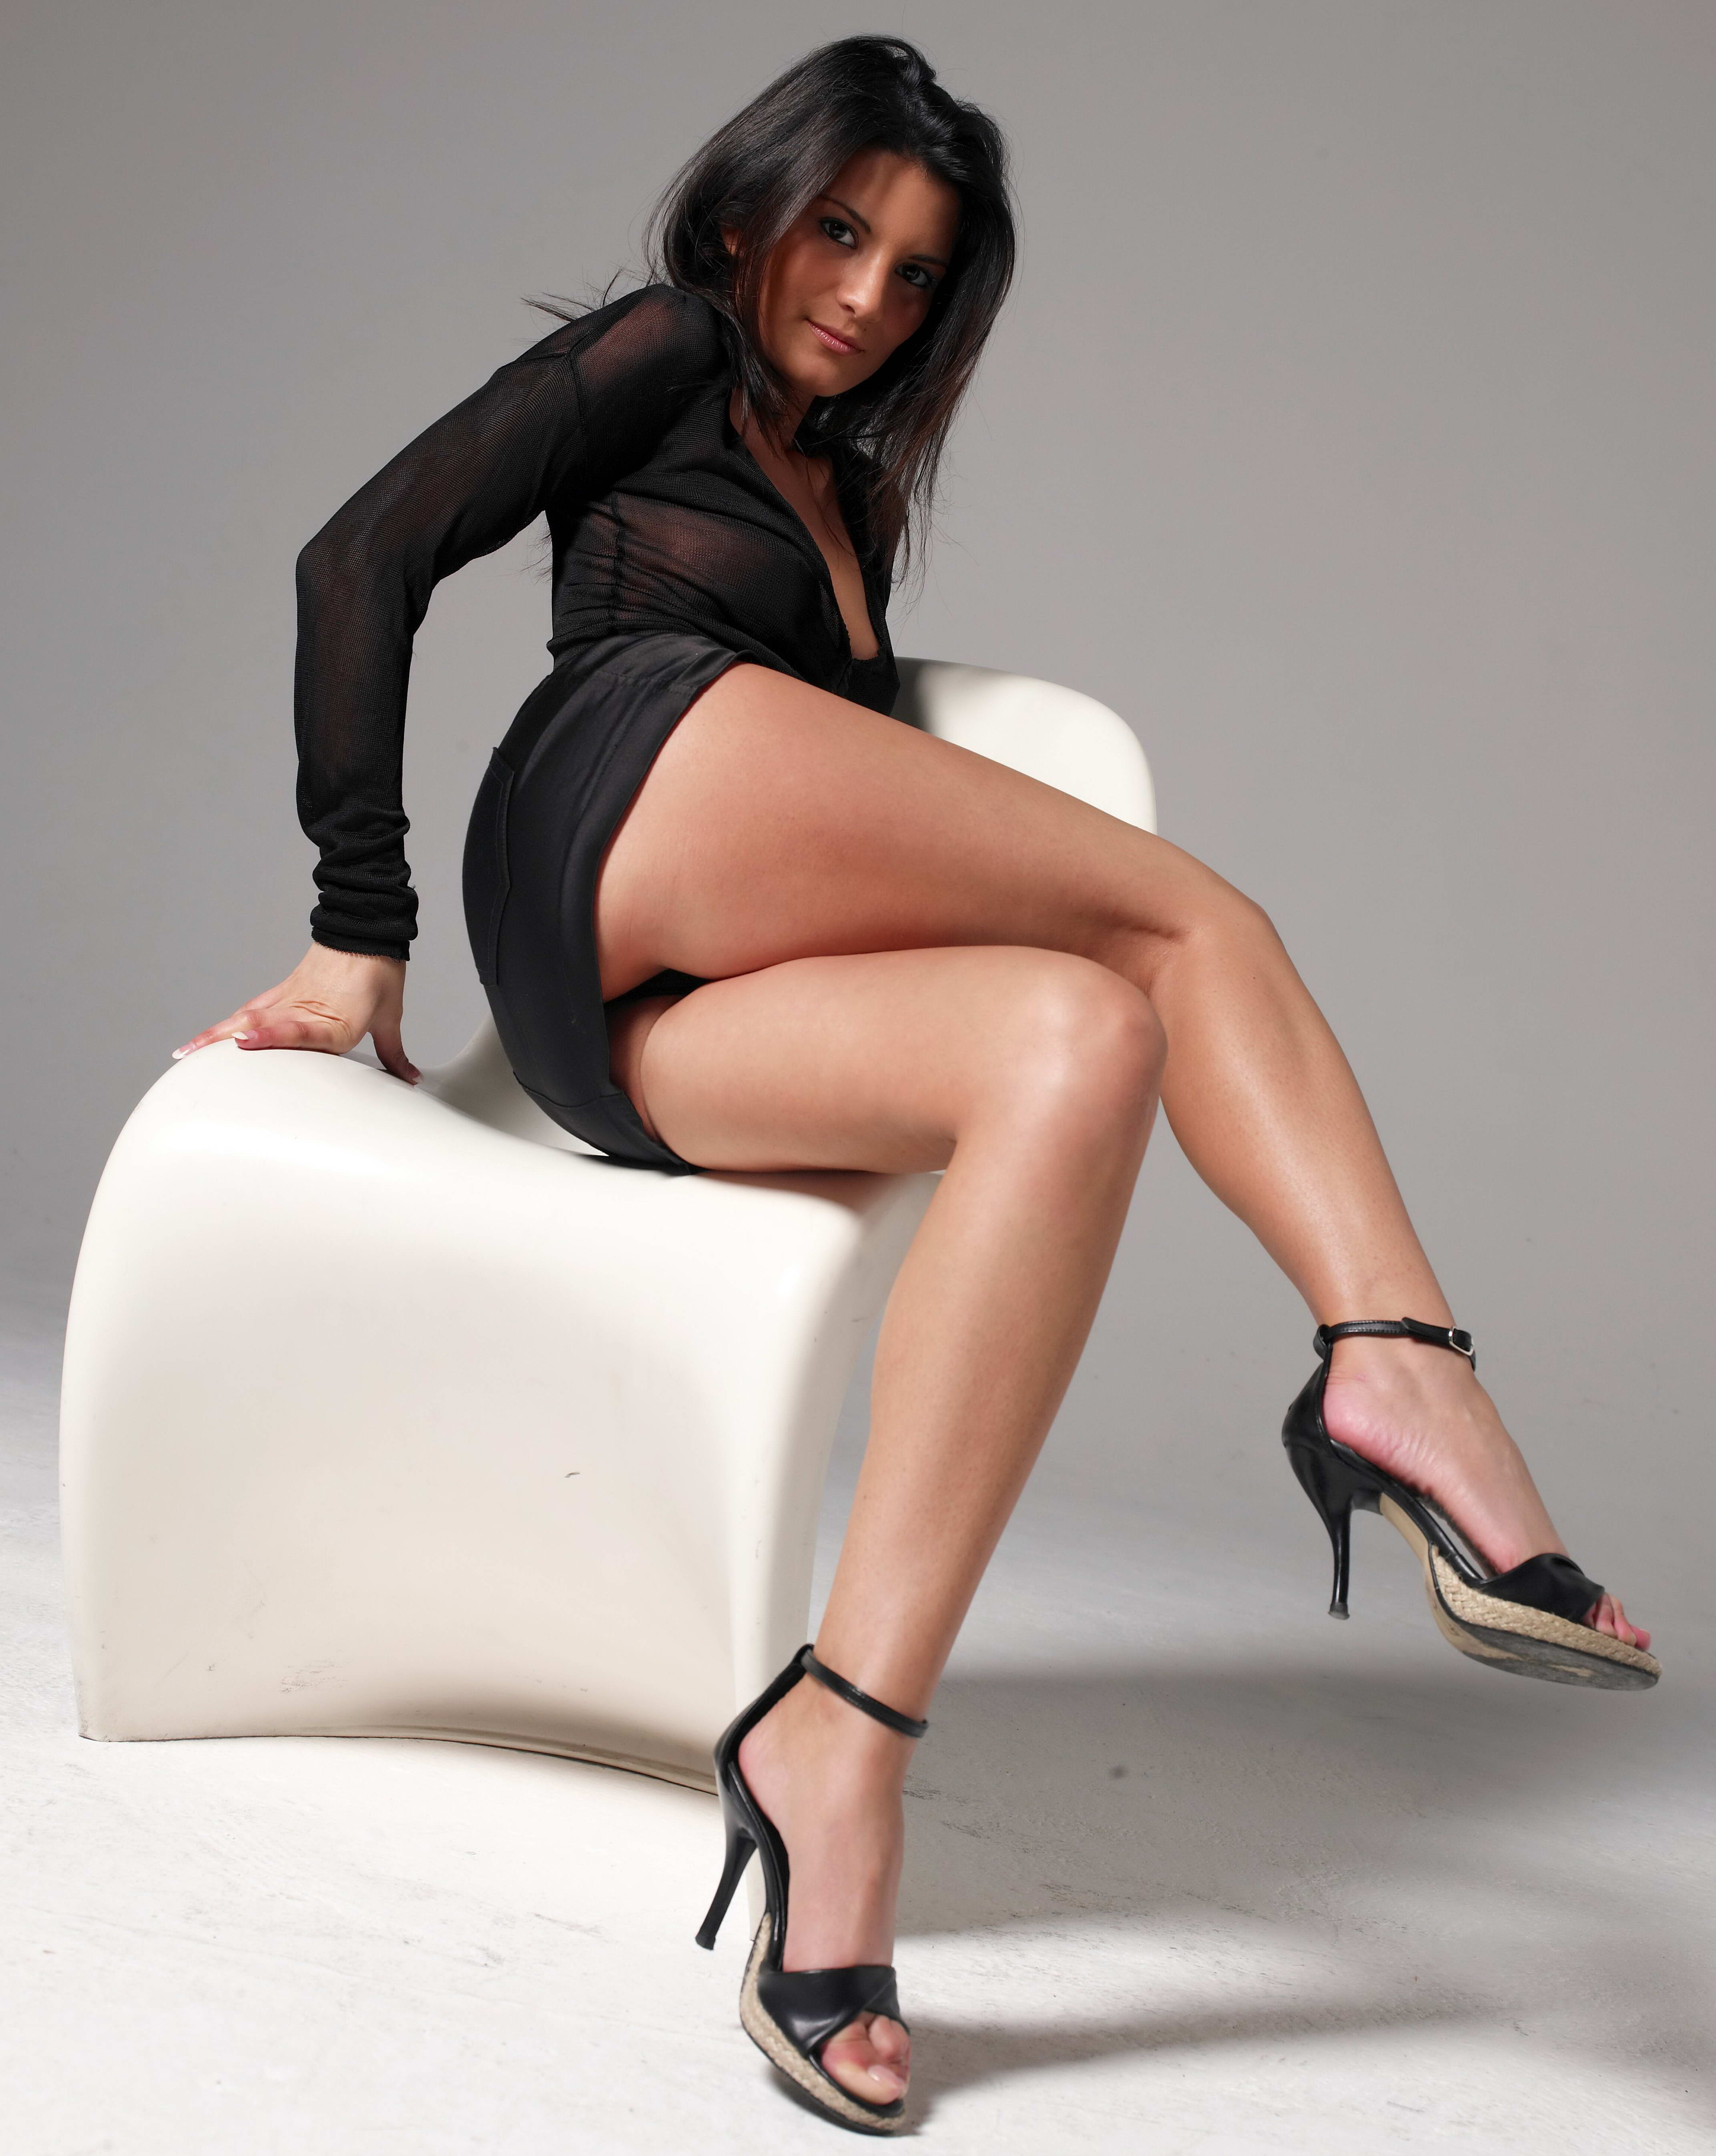 Naughty Brunette With Amazing Legs